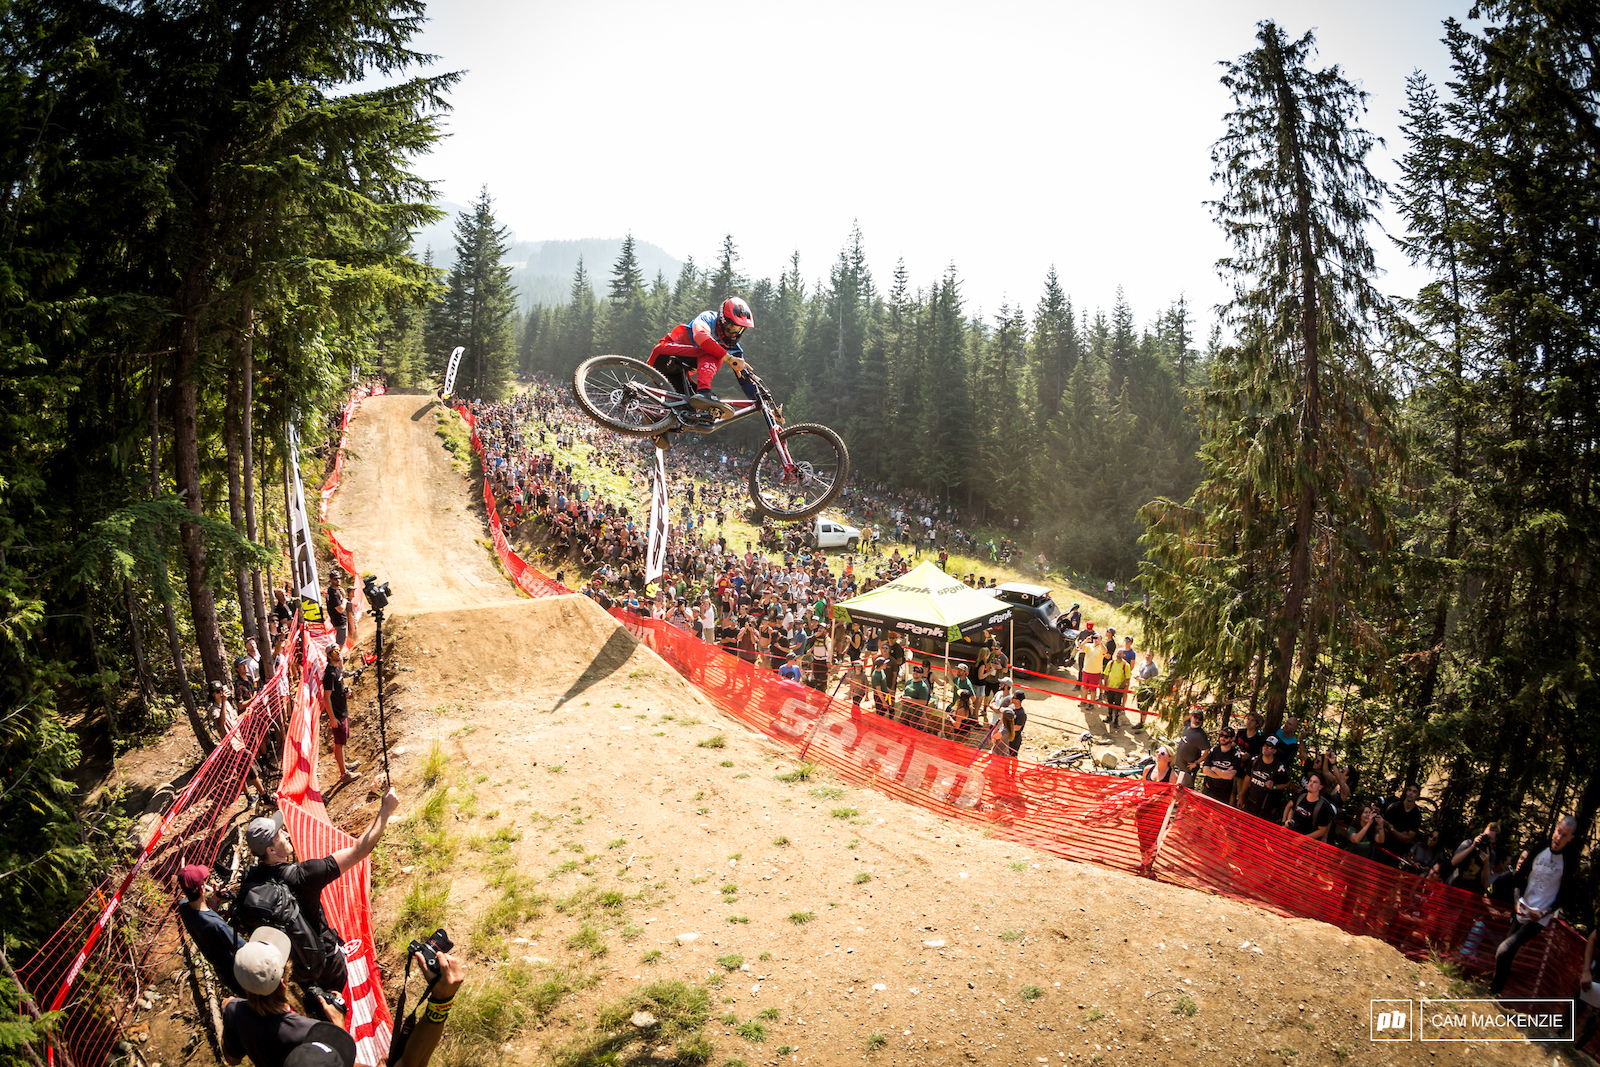 Henry Fitzgerald held things down for the Norco team with the usual whip off offender Sam Blenkinsop out of action.